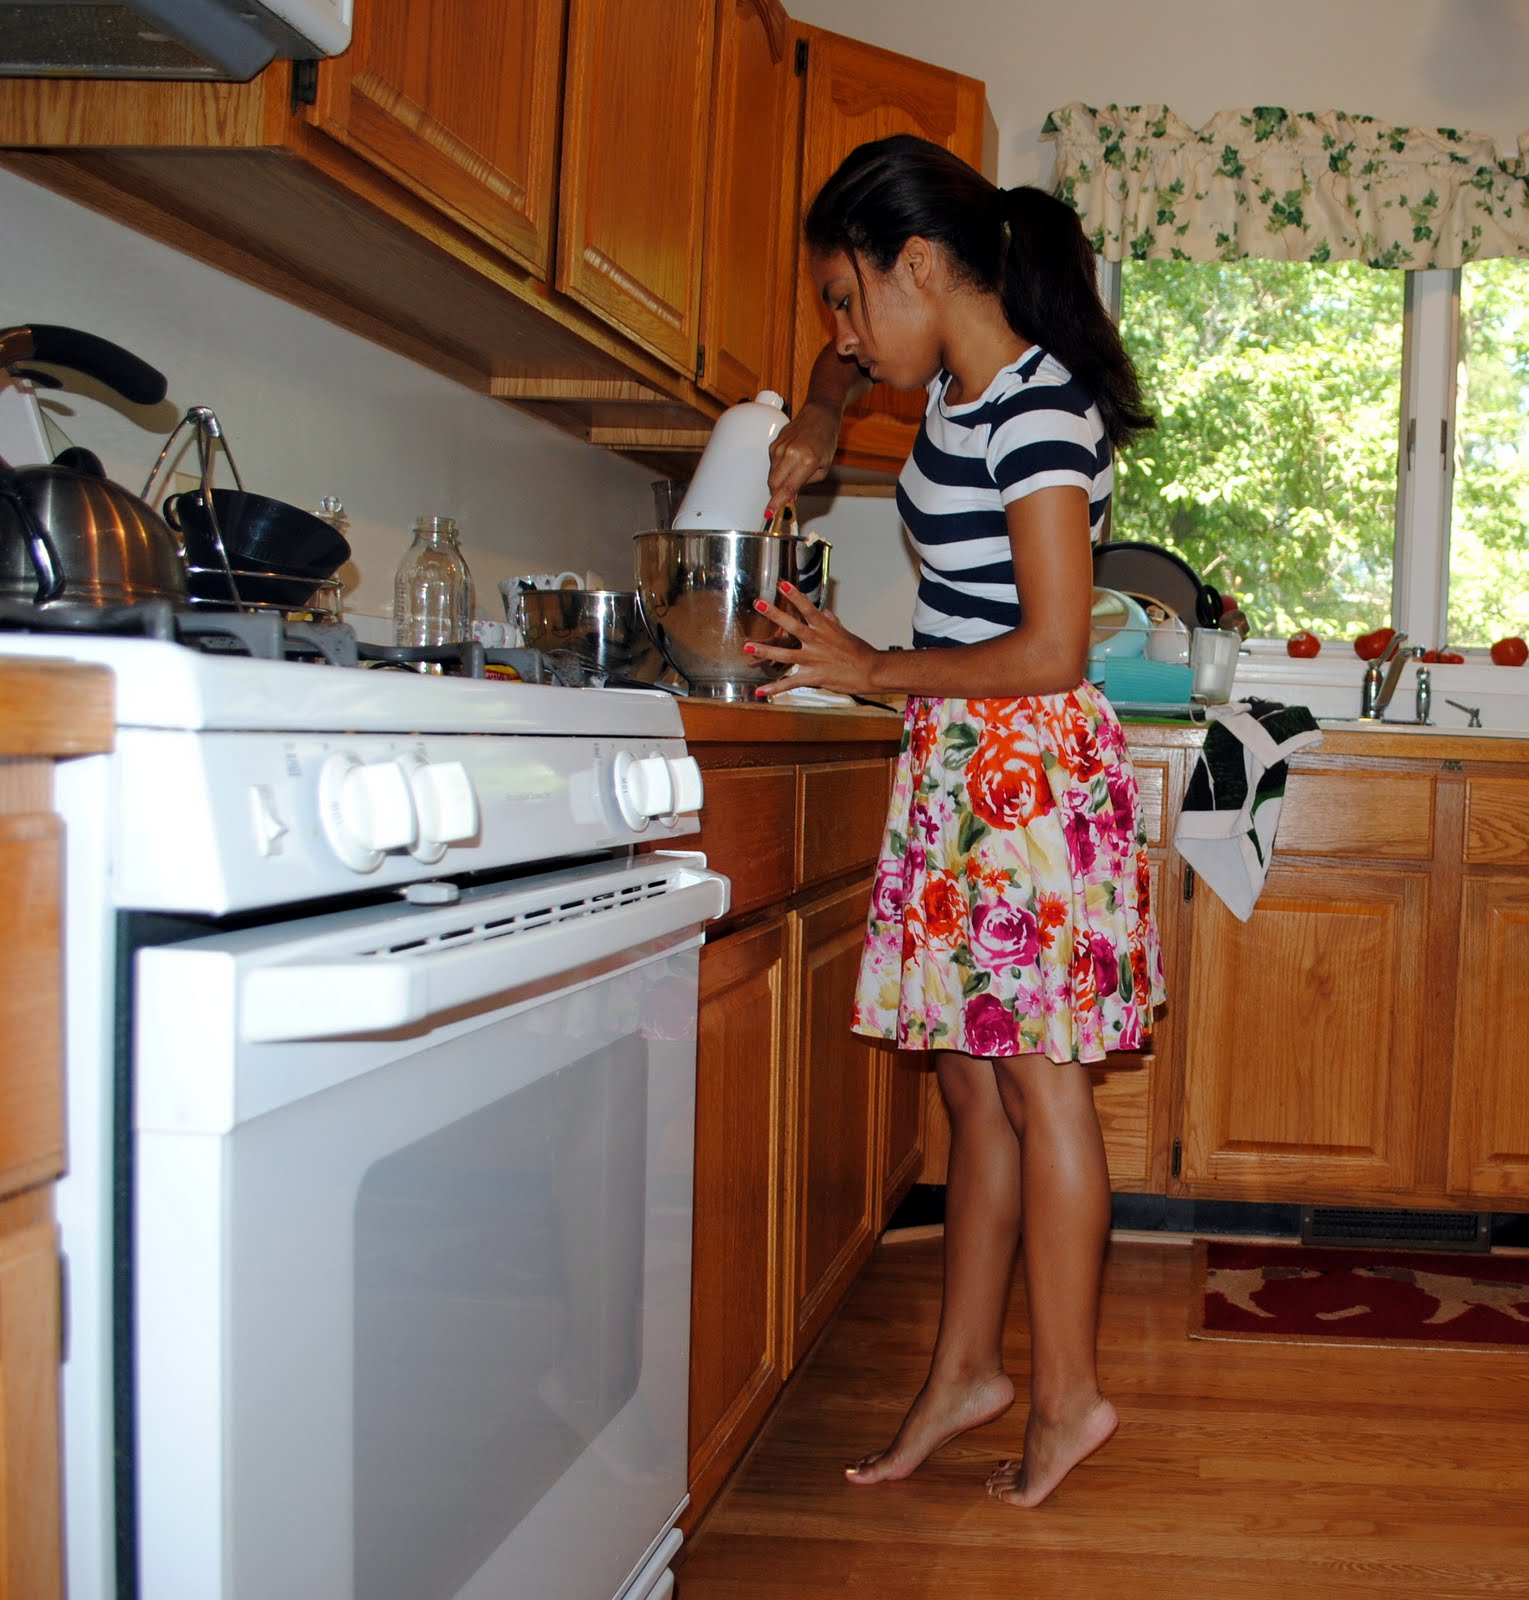 Barefoot Pregnant And In The Kitchen: In My Head This Is What I Look Like Whilst Barefoot In The